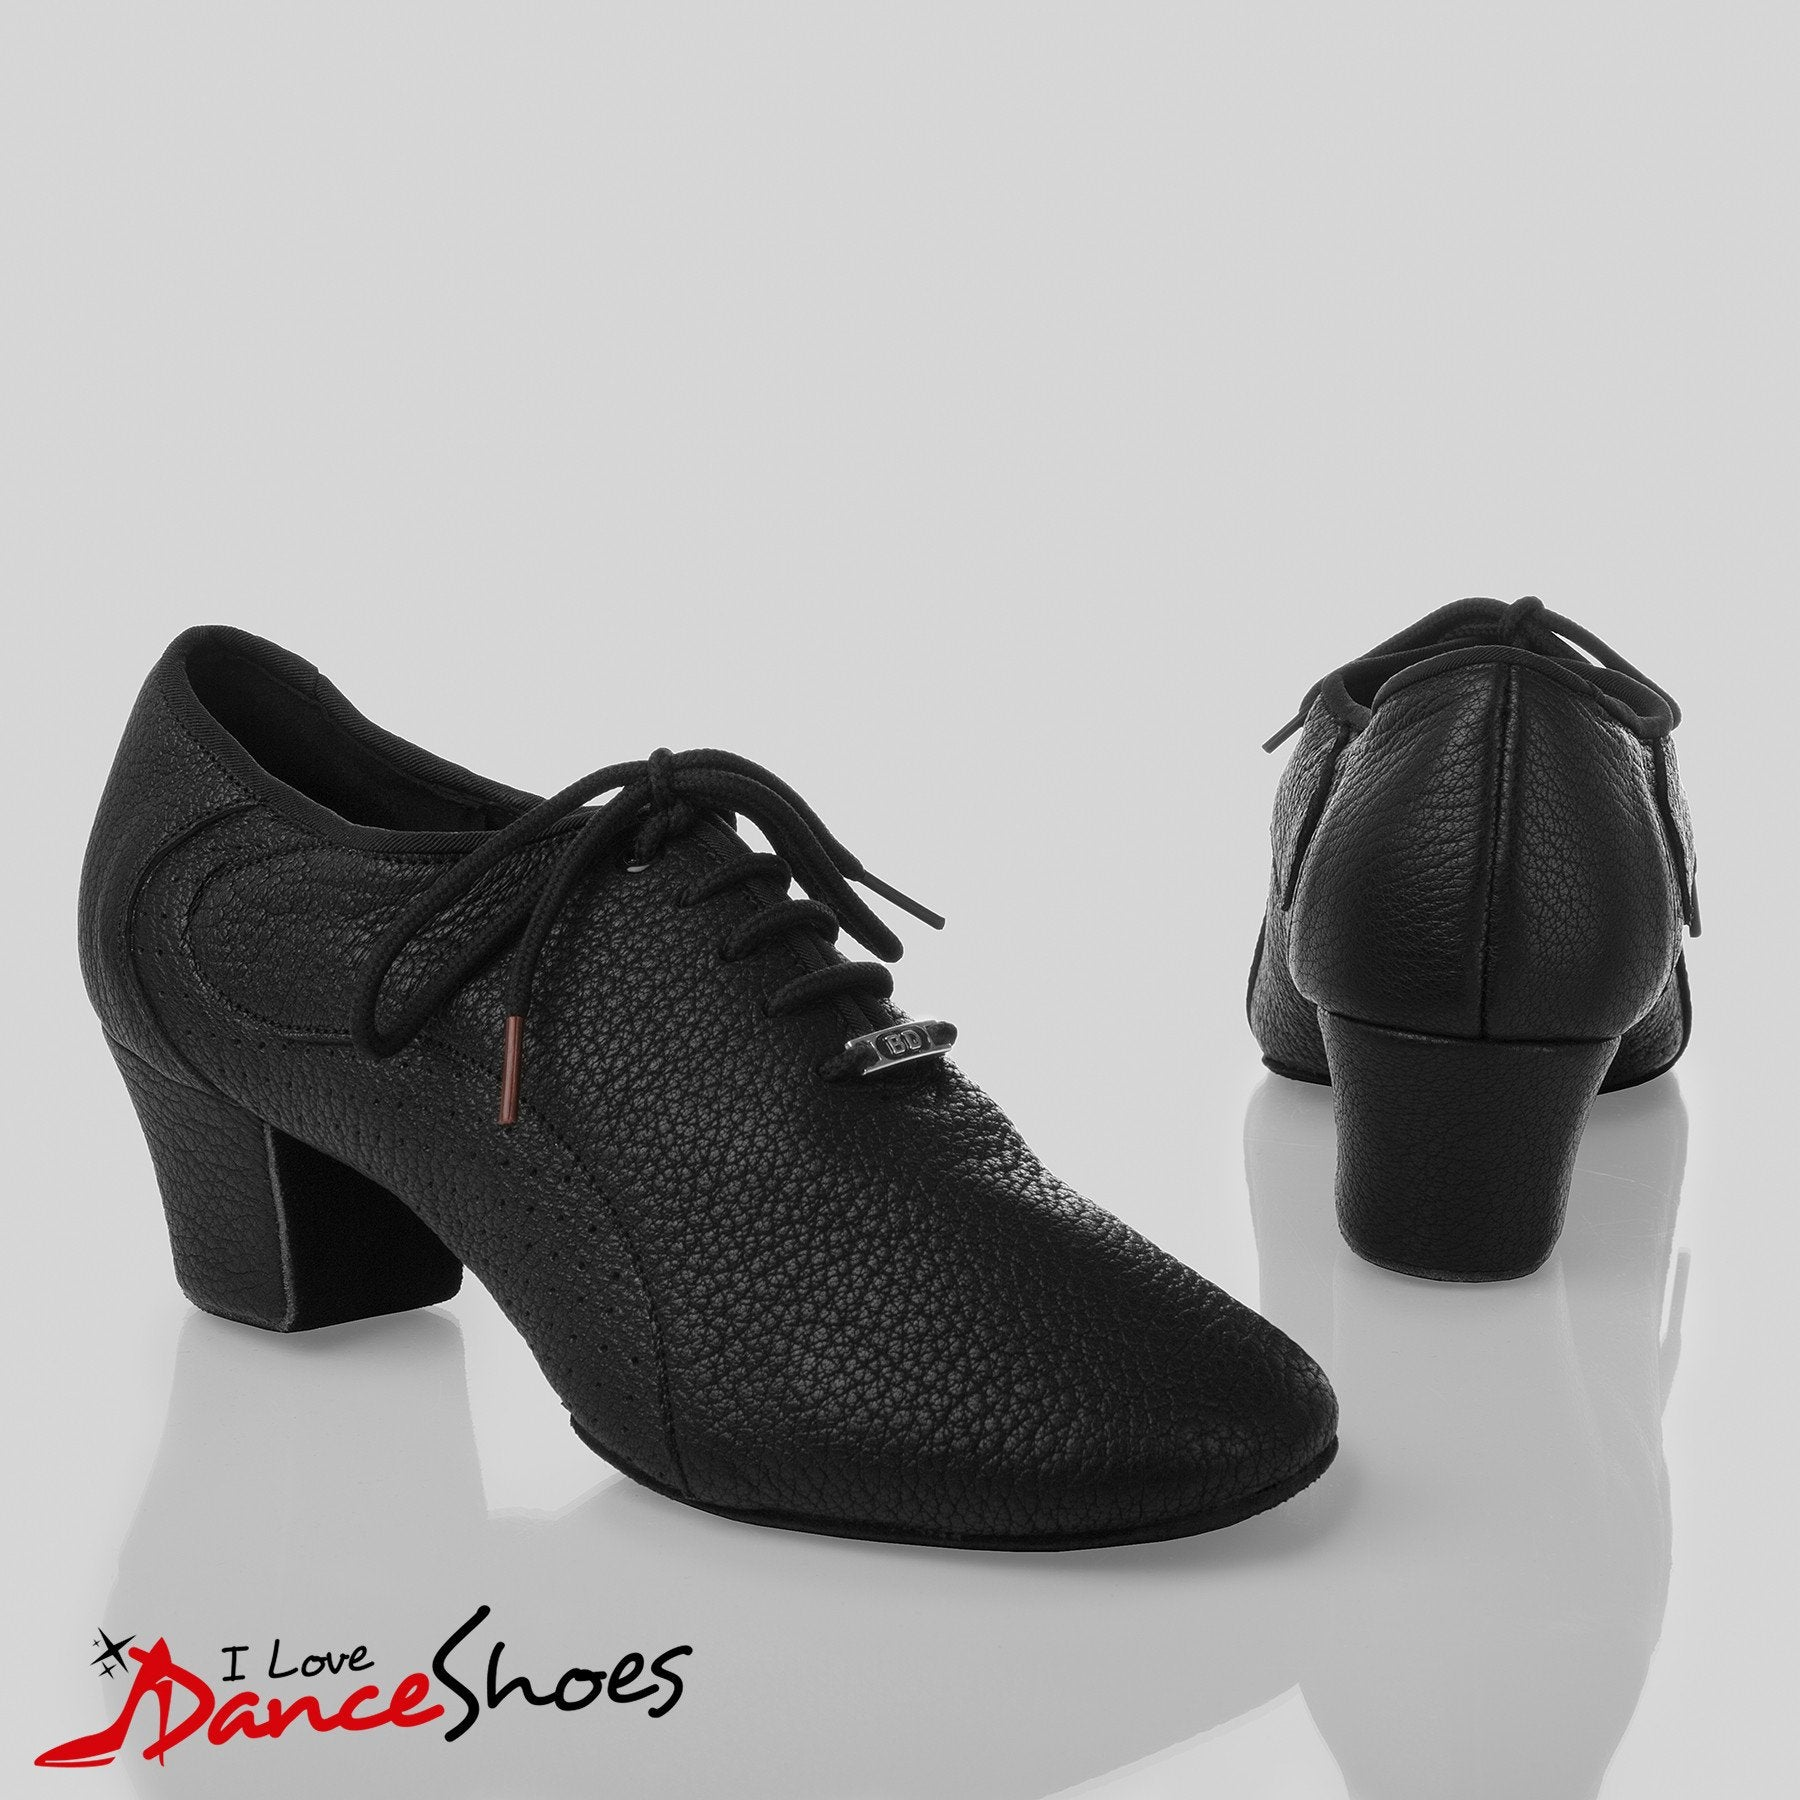 Limited time offer 25% OFF (Ends November 27th): Fantisia Practice Shoes-All Black